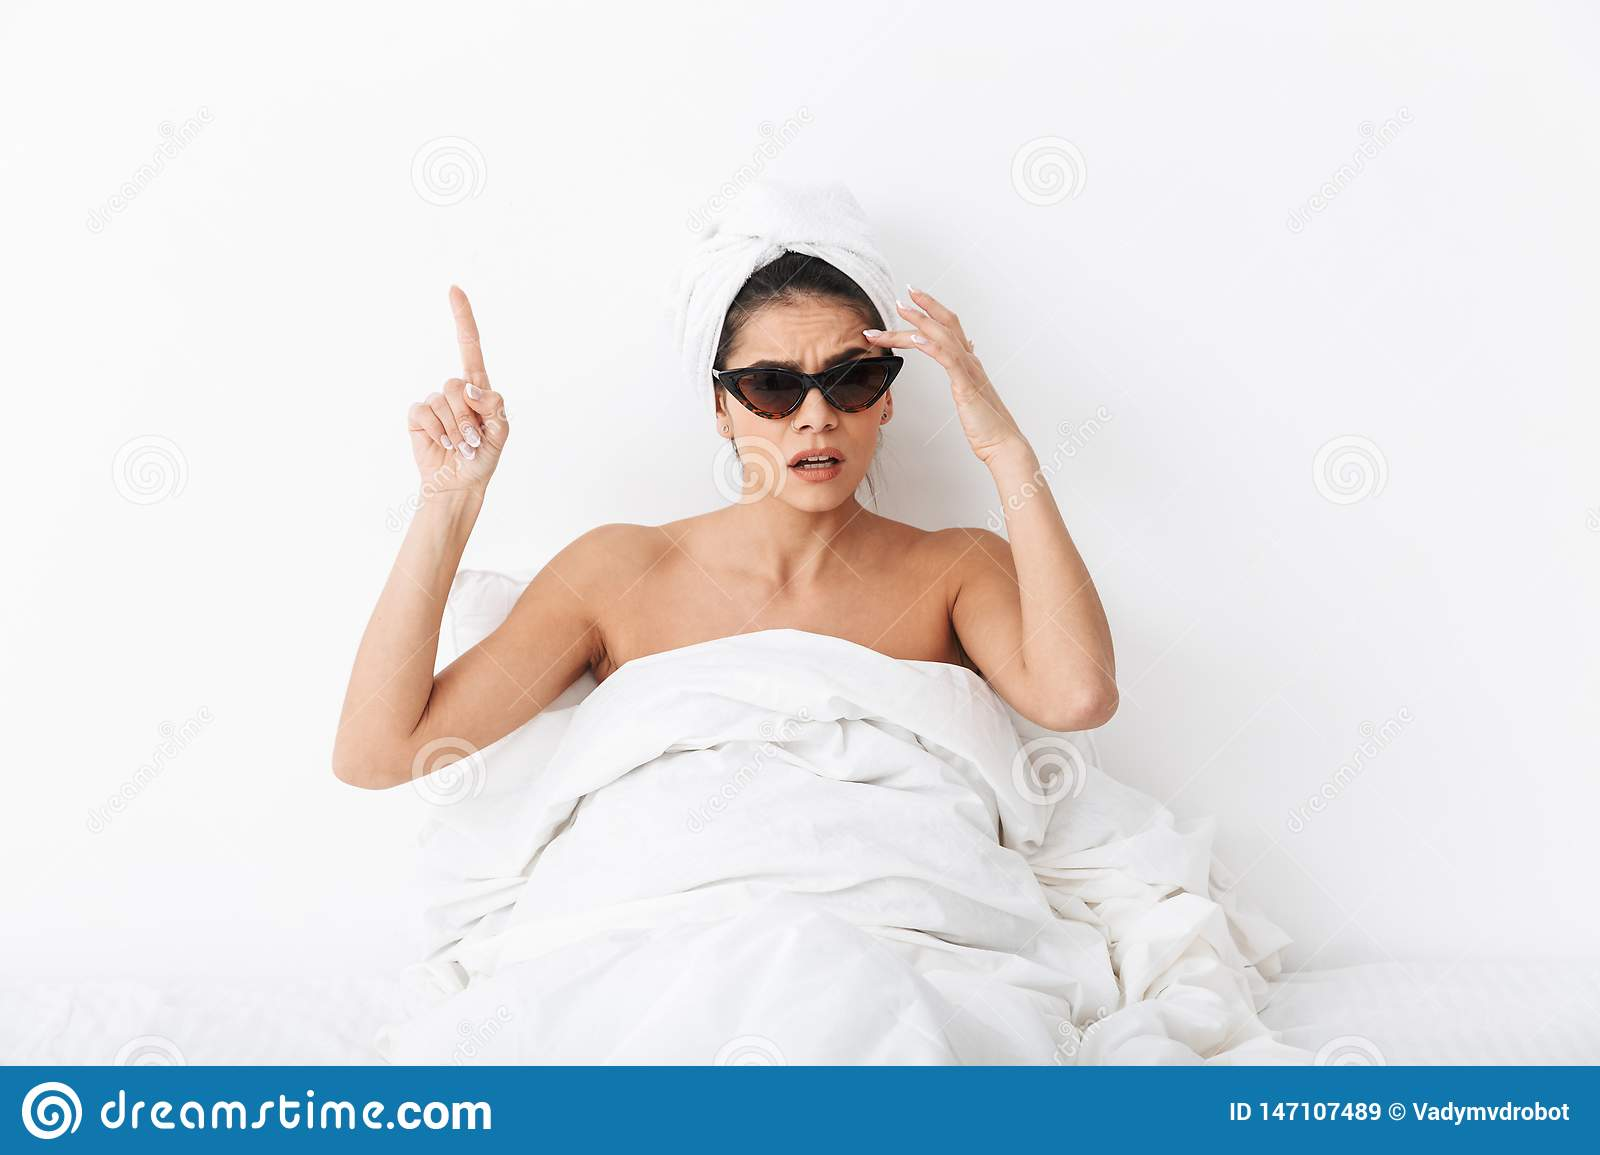 Woman with towel on head lies in bed covering body under blanket isolated over white wall background wearing sunglasses pointing